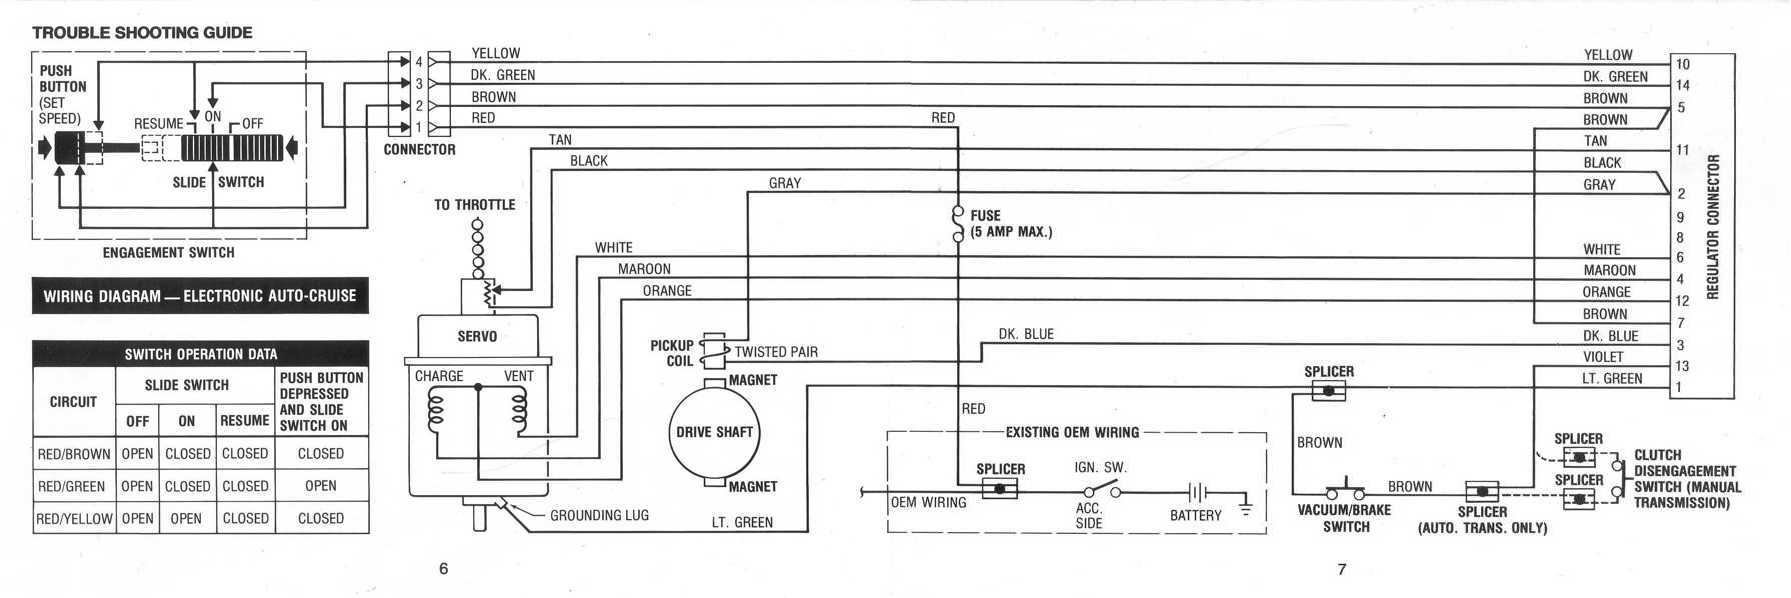 Funky Zig Unit Wiring Diagram Photo - Wiring Schematics and Diagrams ...